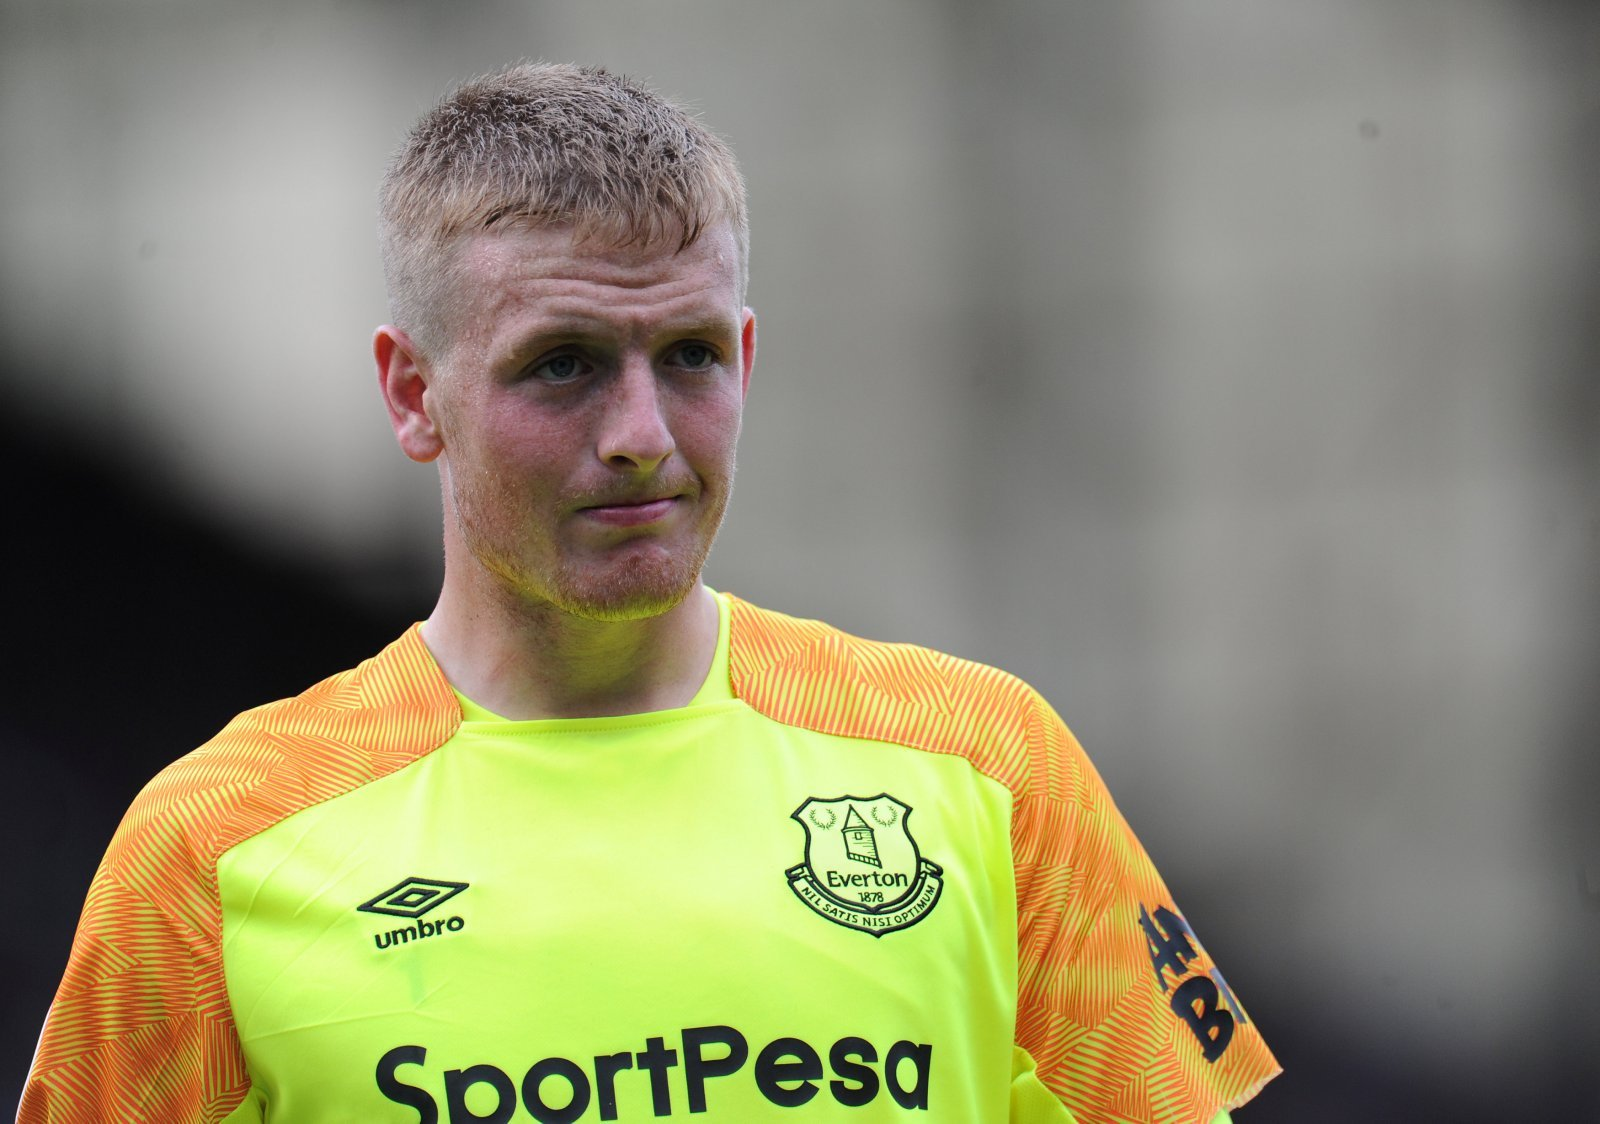 Jordan Pickford doesn't quite have the backing of a lot of Everton fans just yet